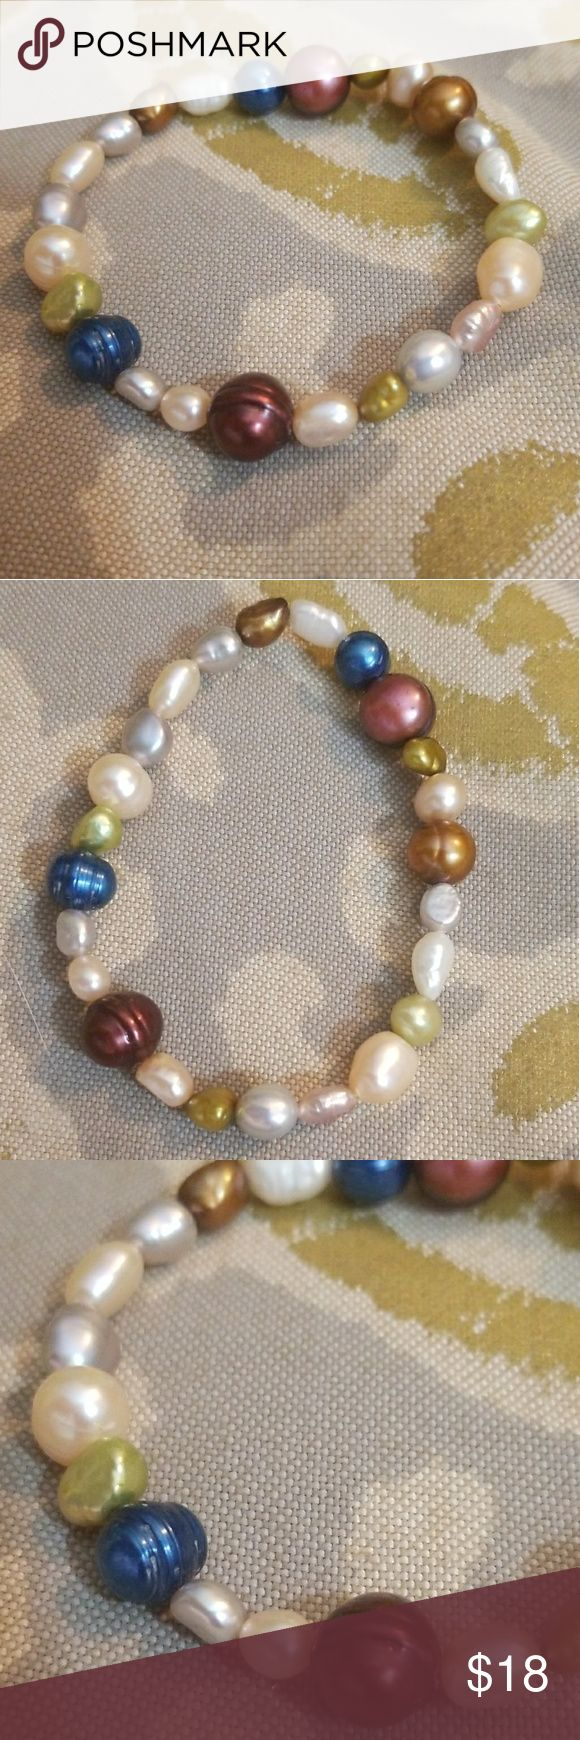 Real Fresh Water Pearls Bracelet This bracelet is made from real fresh water pearls in assorted colors never worn and it's stretchy to put on and take off. Jewelry Bracelets